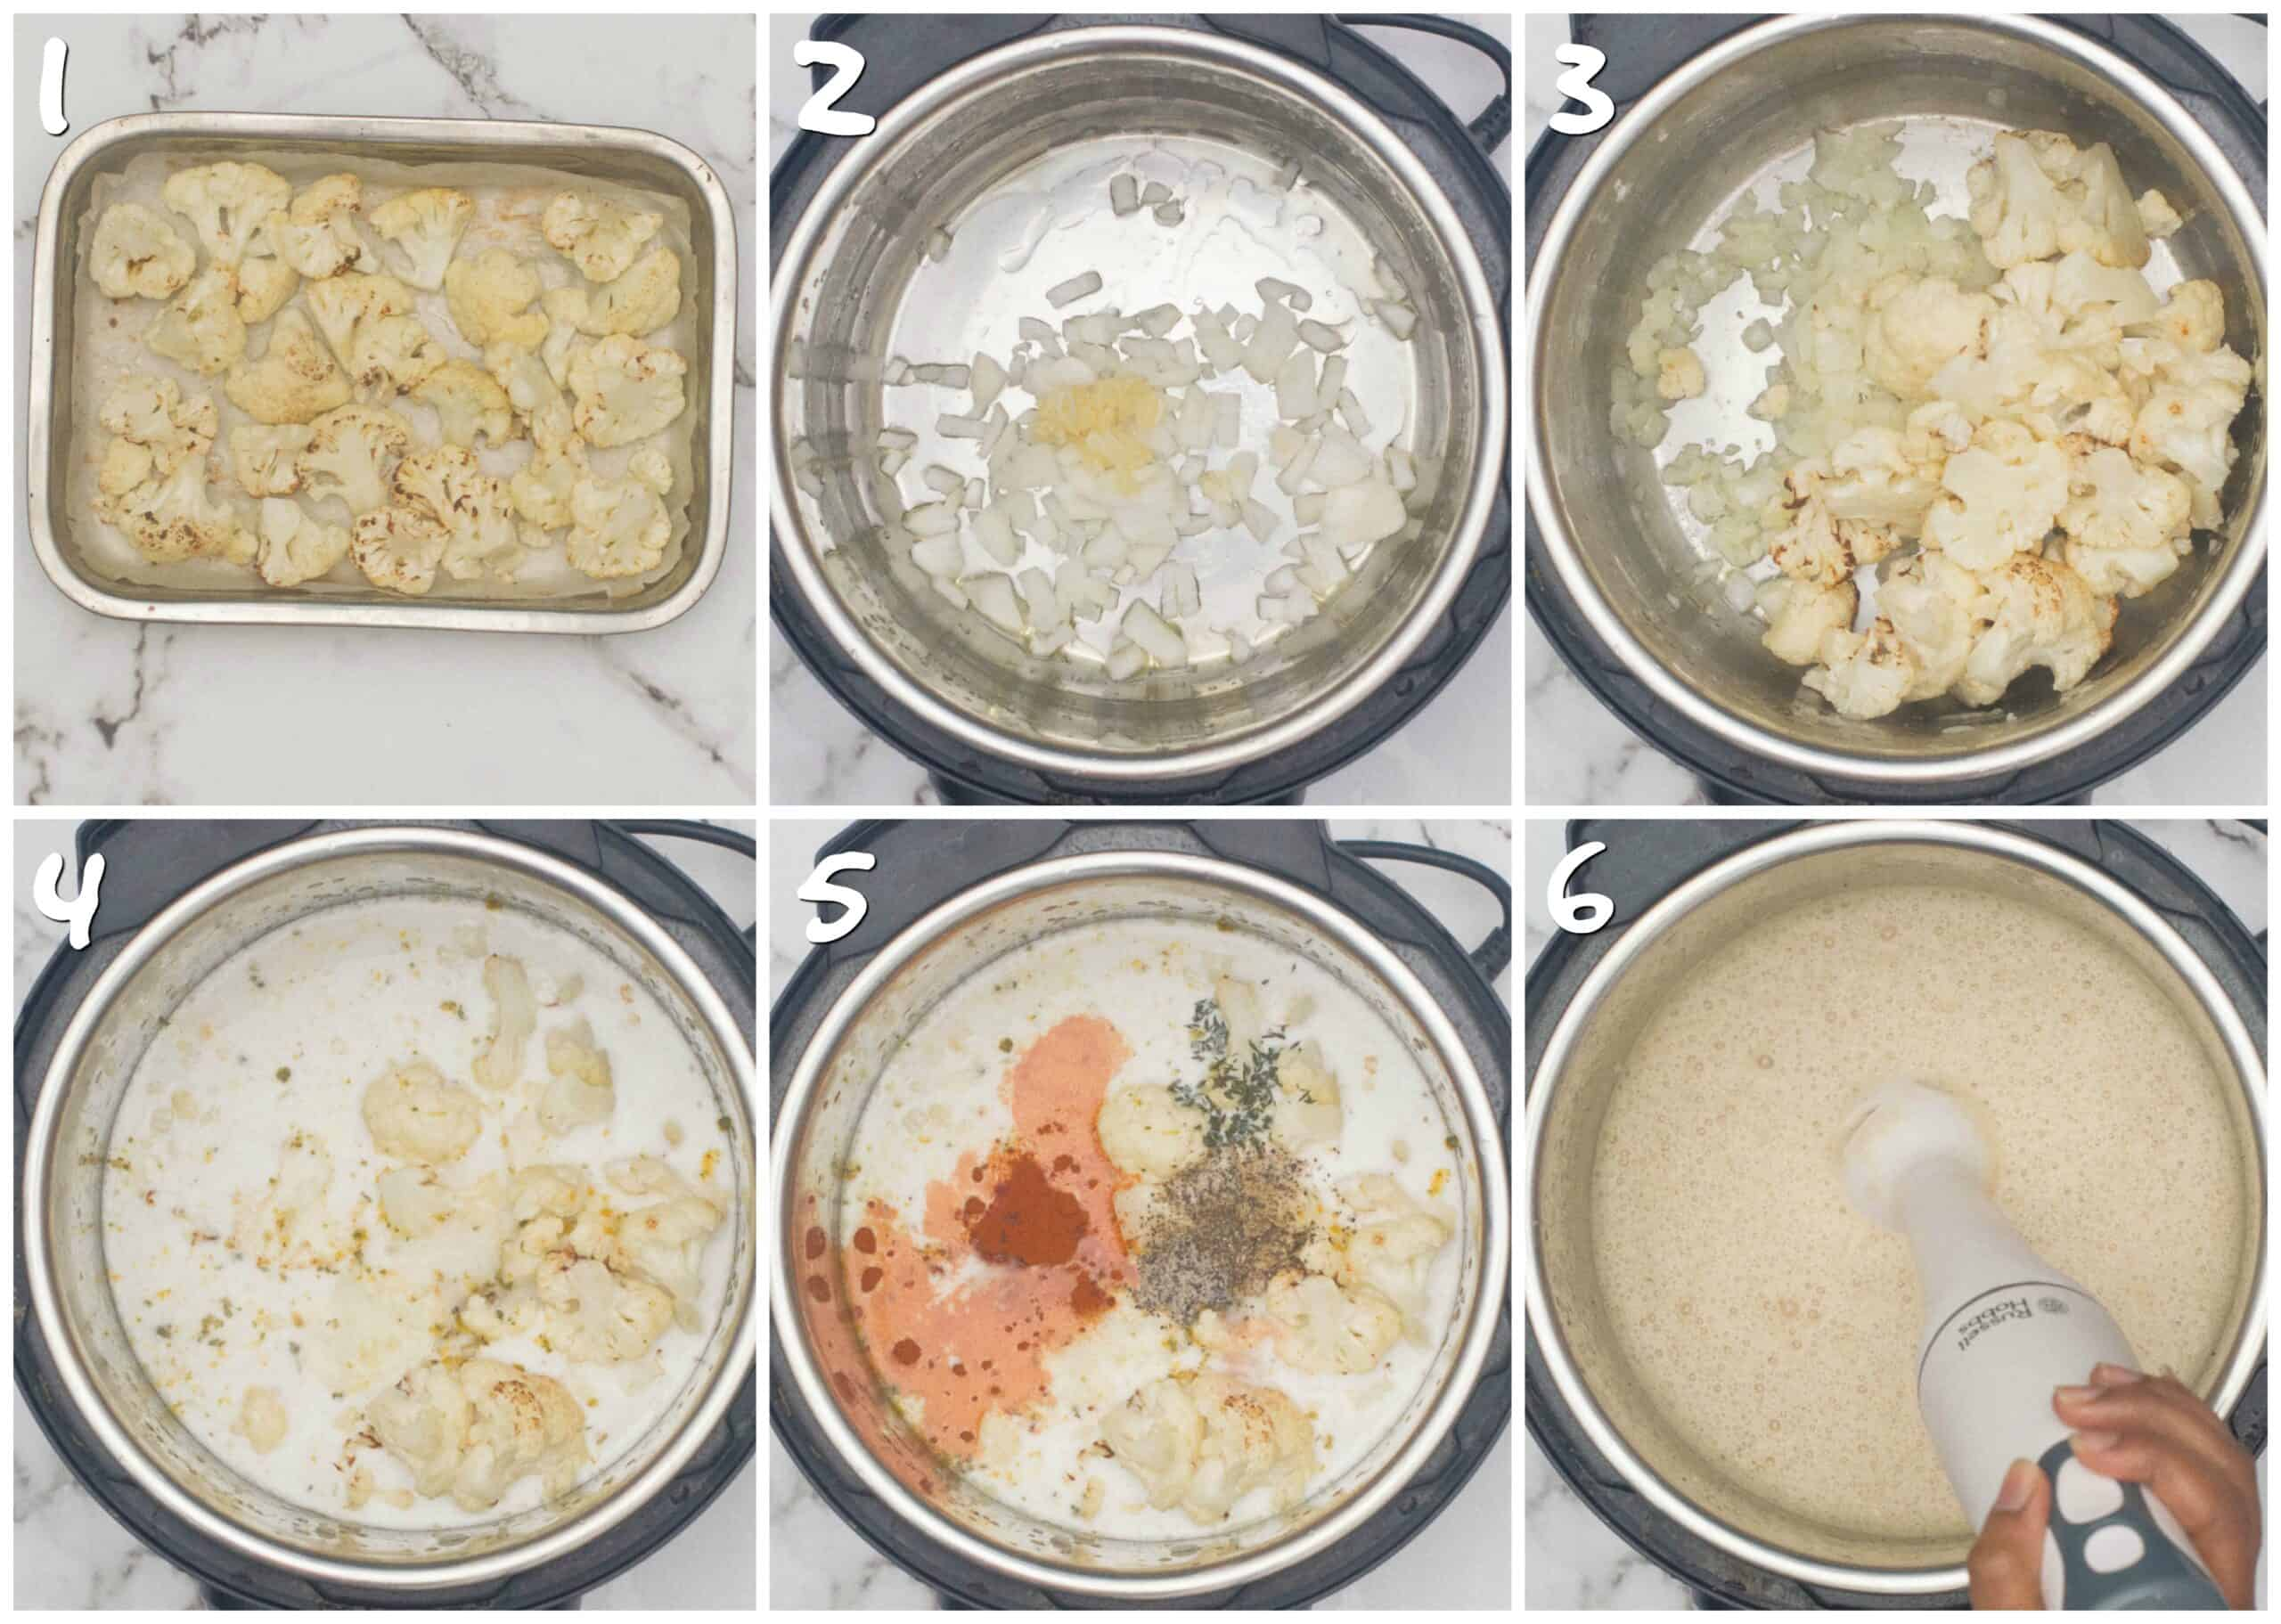 steps 1-6 of roasting and pureeing the soup